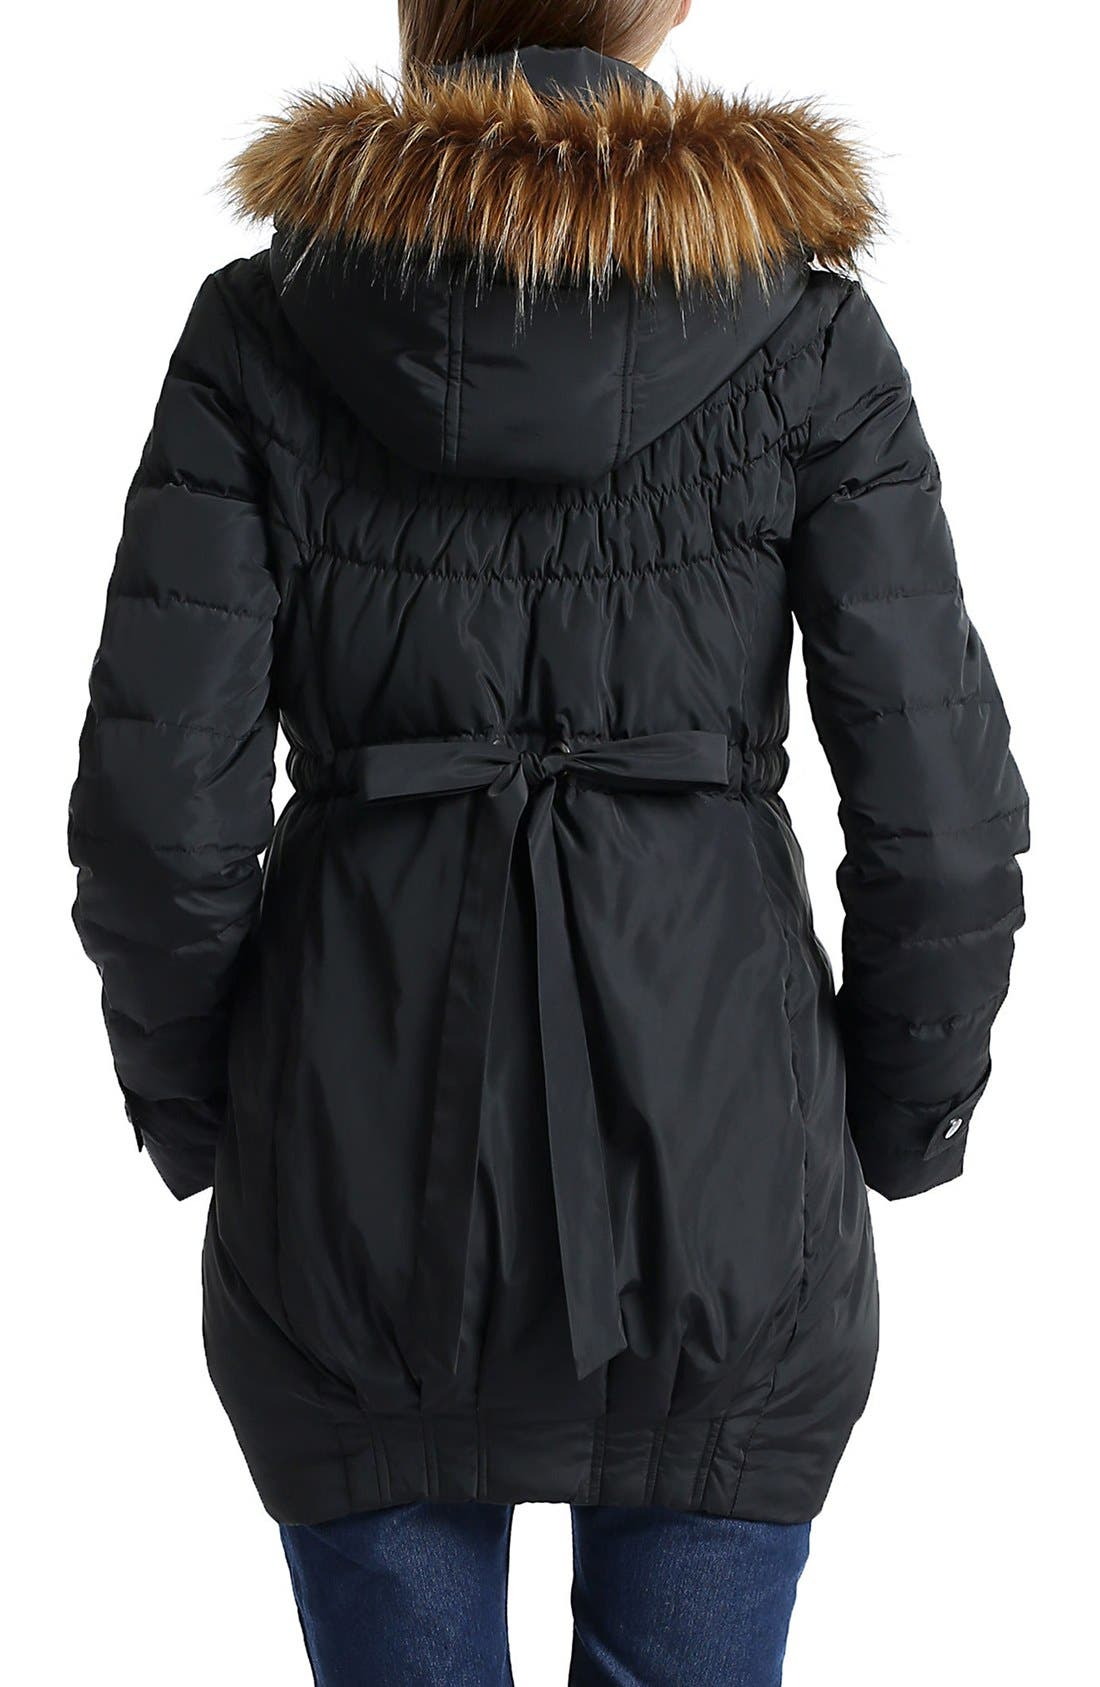 KIMI AND KAI,                             'Arlo' Water Resistant Down Maternity Parka with Baby Carrier Cover Inset,                             Alternate thumbnail 3, color,                             BLACK